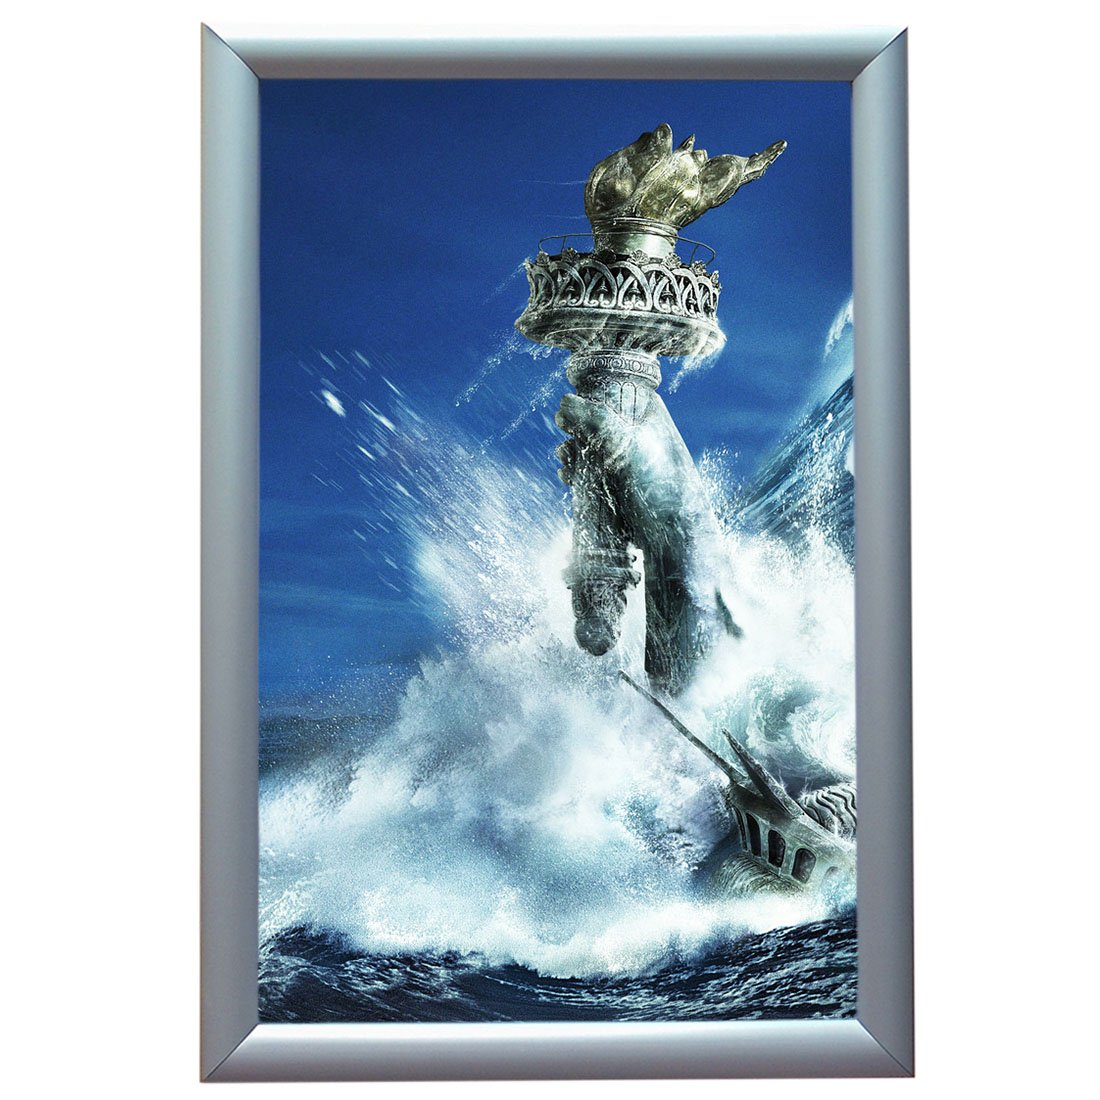 Aluminum Snap Frame for Poster 11 x 17 Inches, 25mm Profile …(Sliver) Ltd.